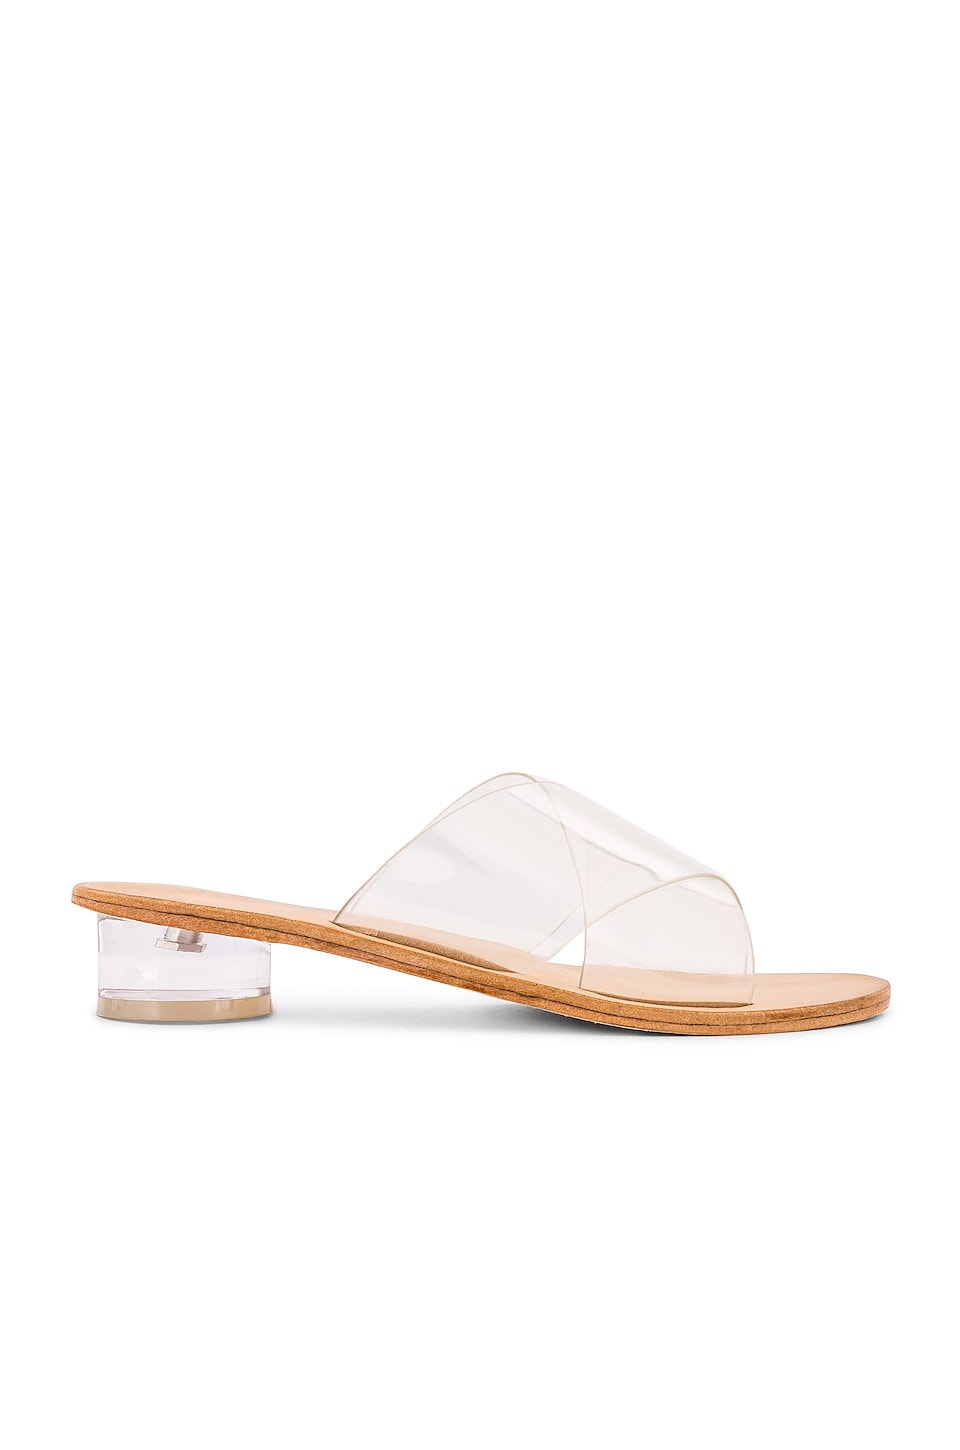 Jeffrey Campbell Bronwen Sandal in Clear & Natural